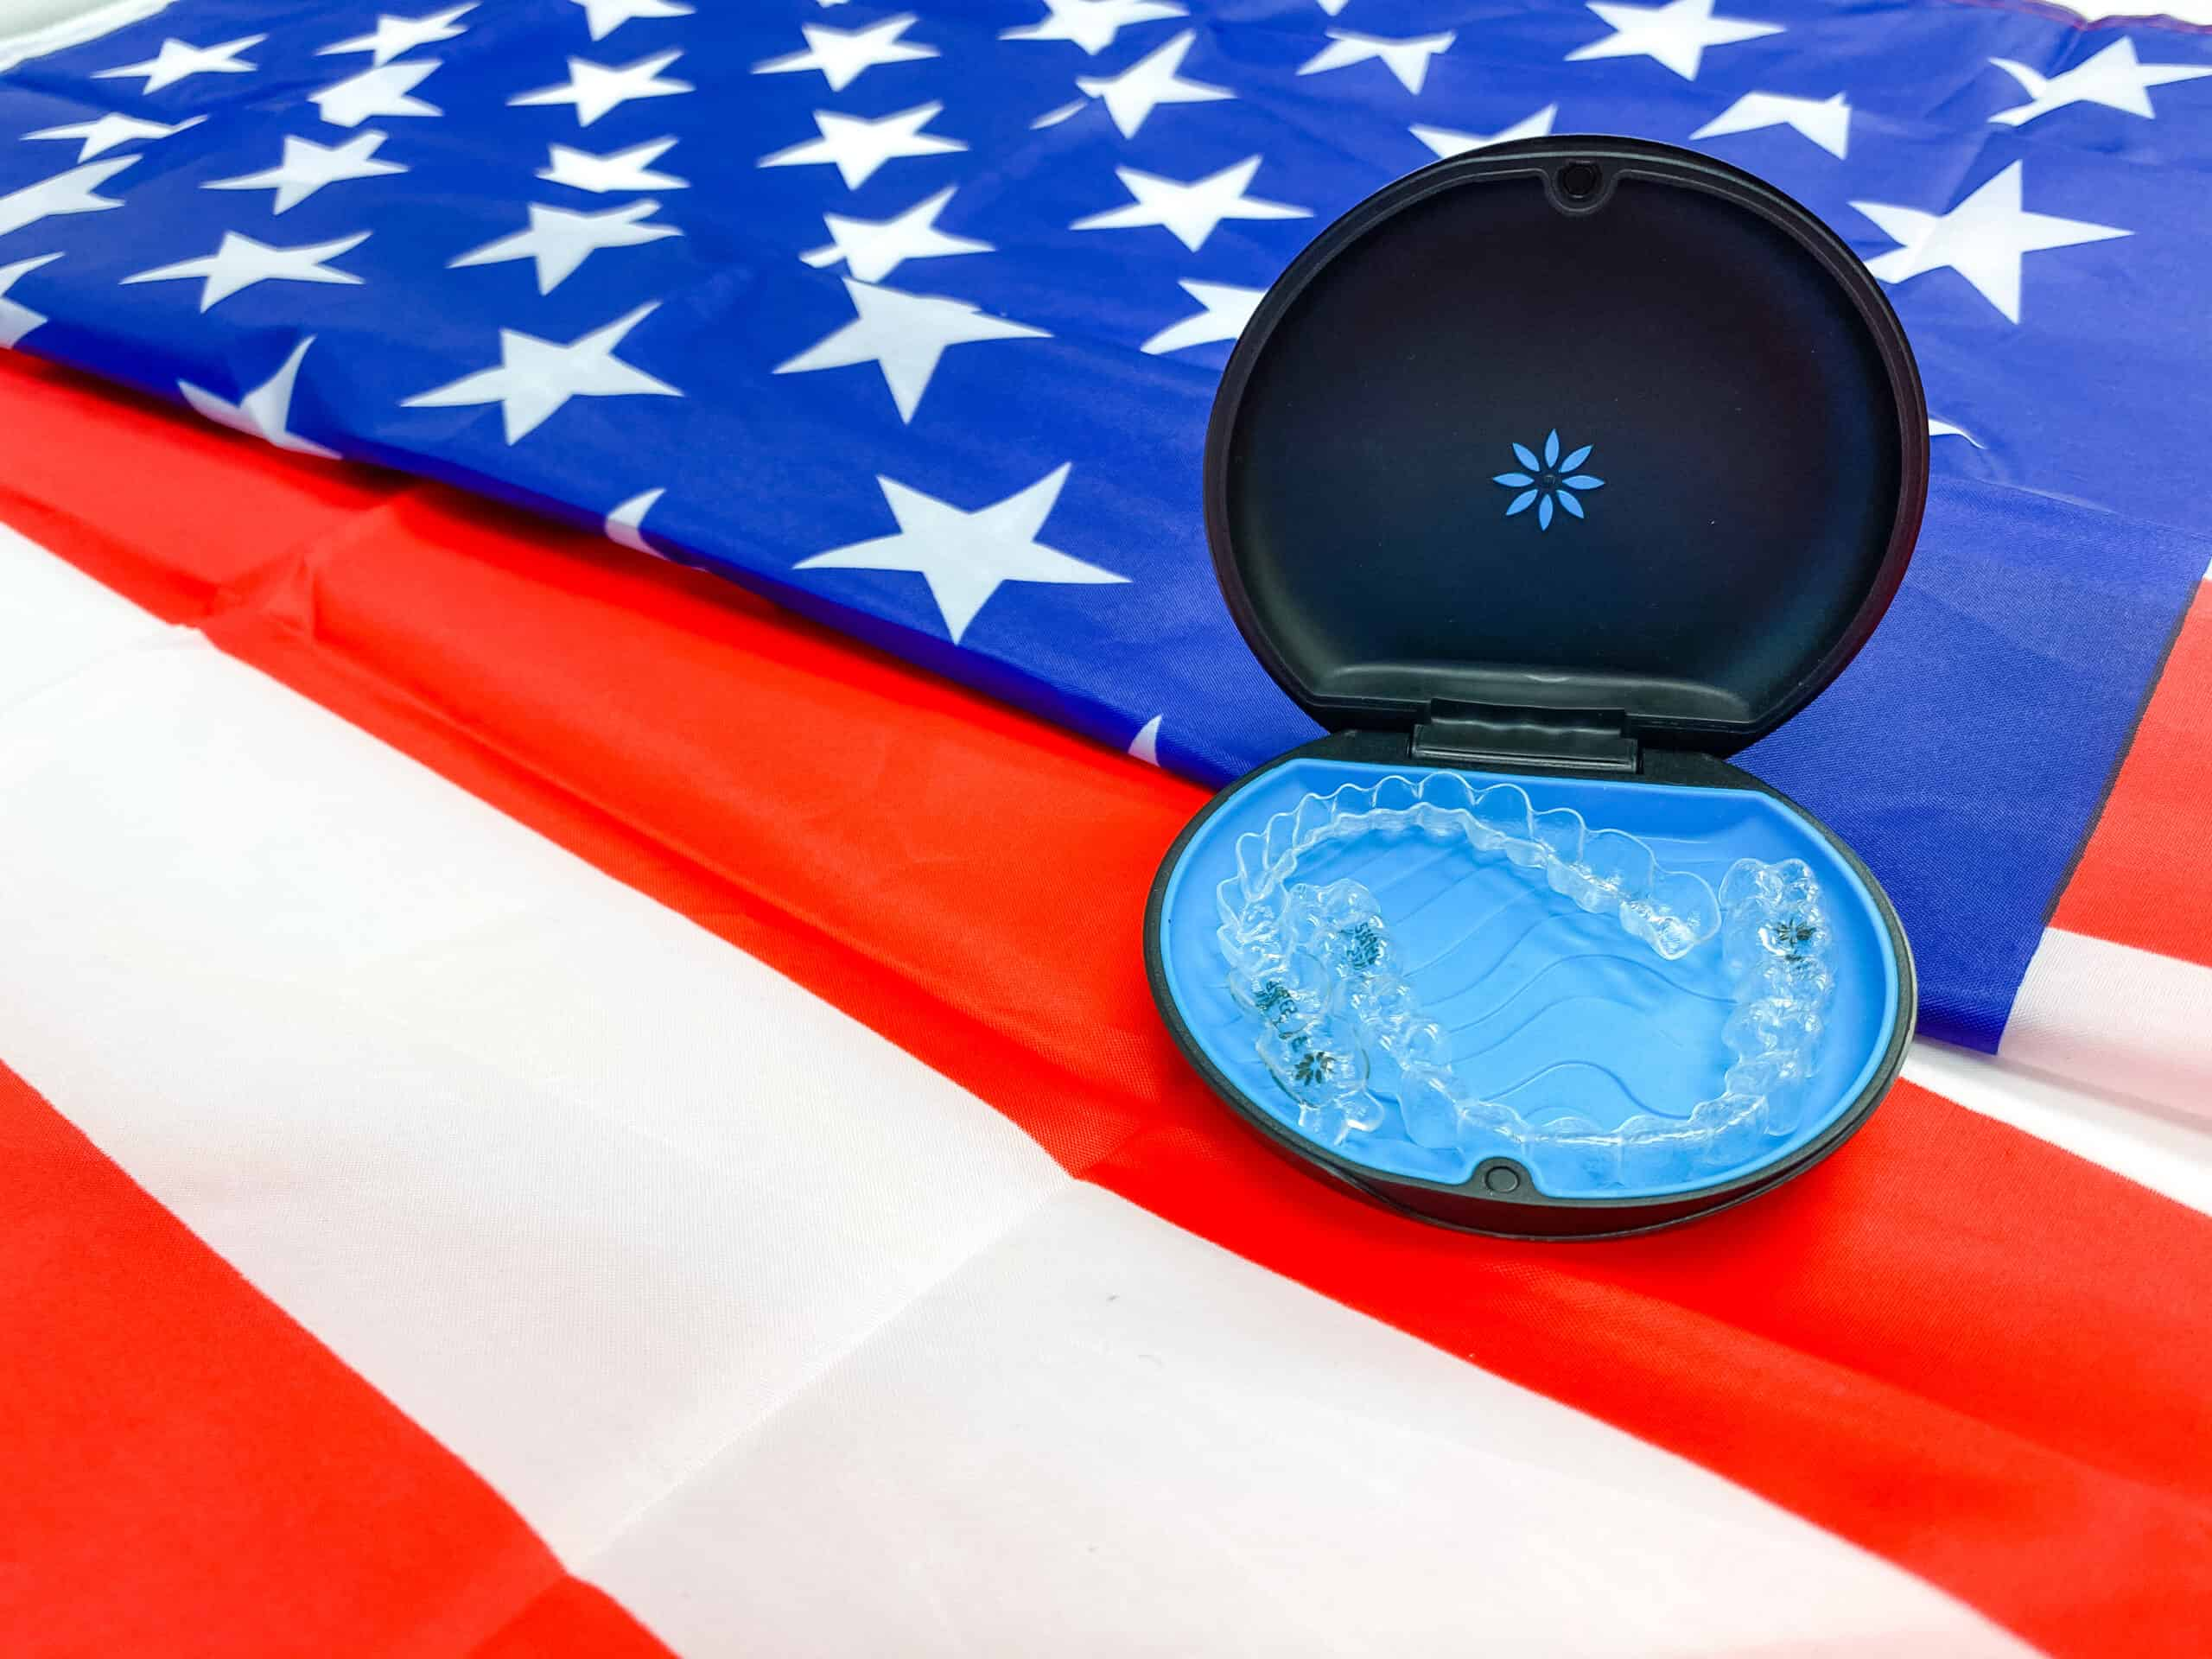 5 Reasons Why Invisalign Treatment at NVO is Ideal for Service Members